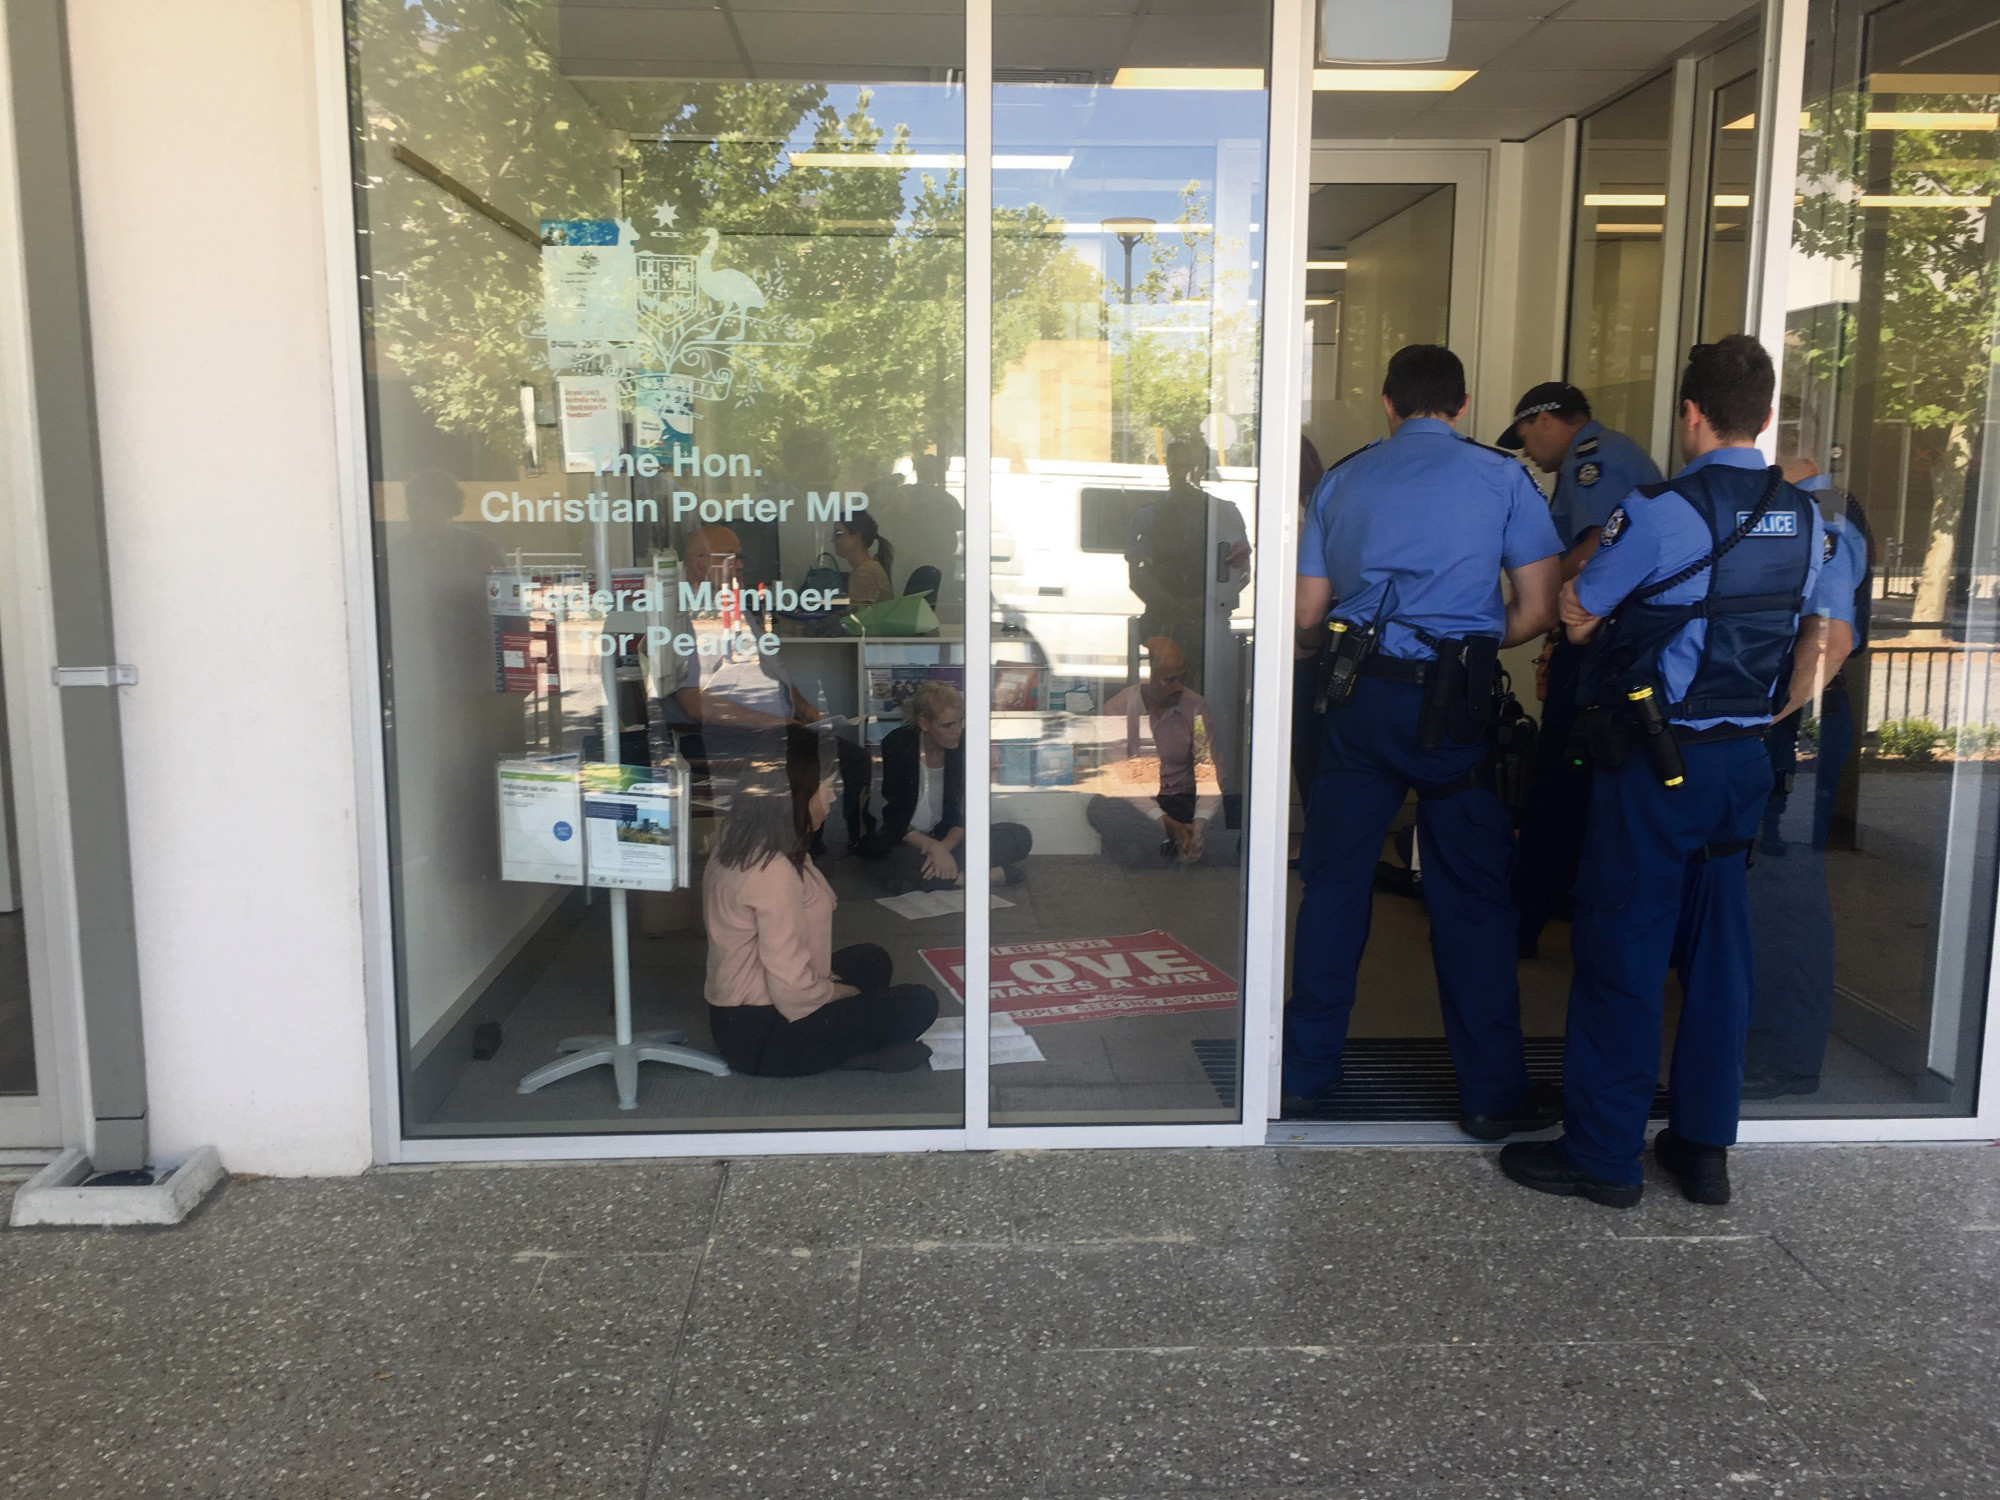 Police move in on the protesters at Christian Porter's Ellenbrook office.